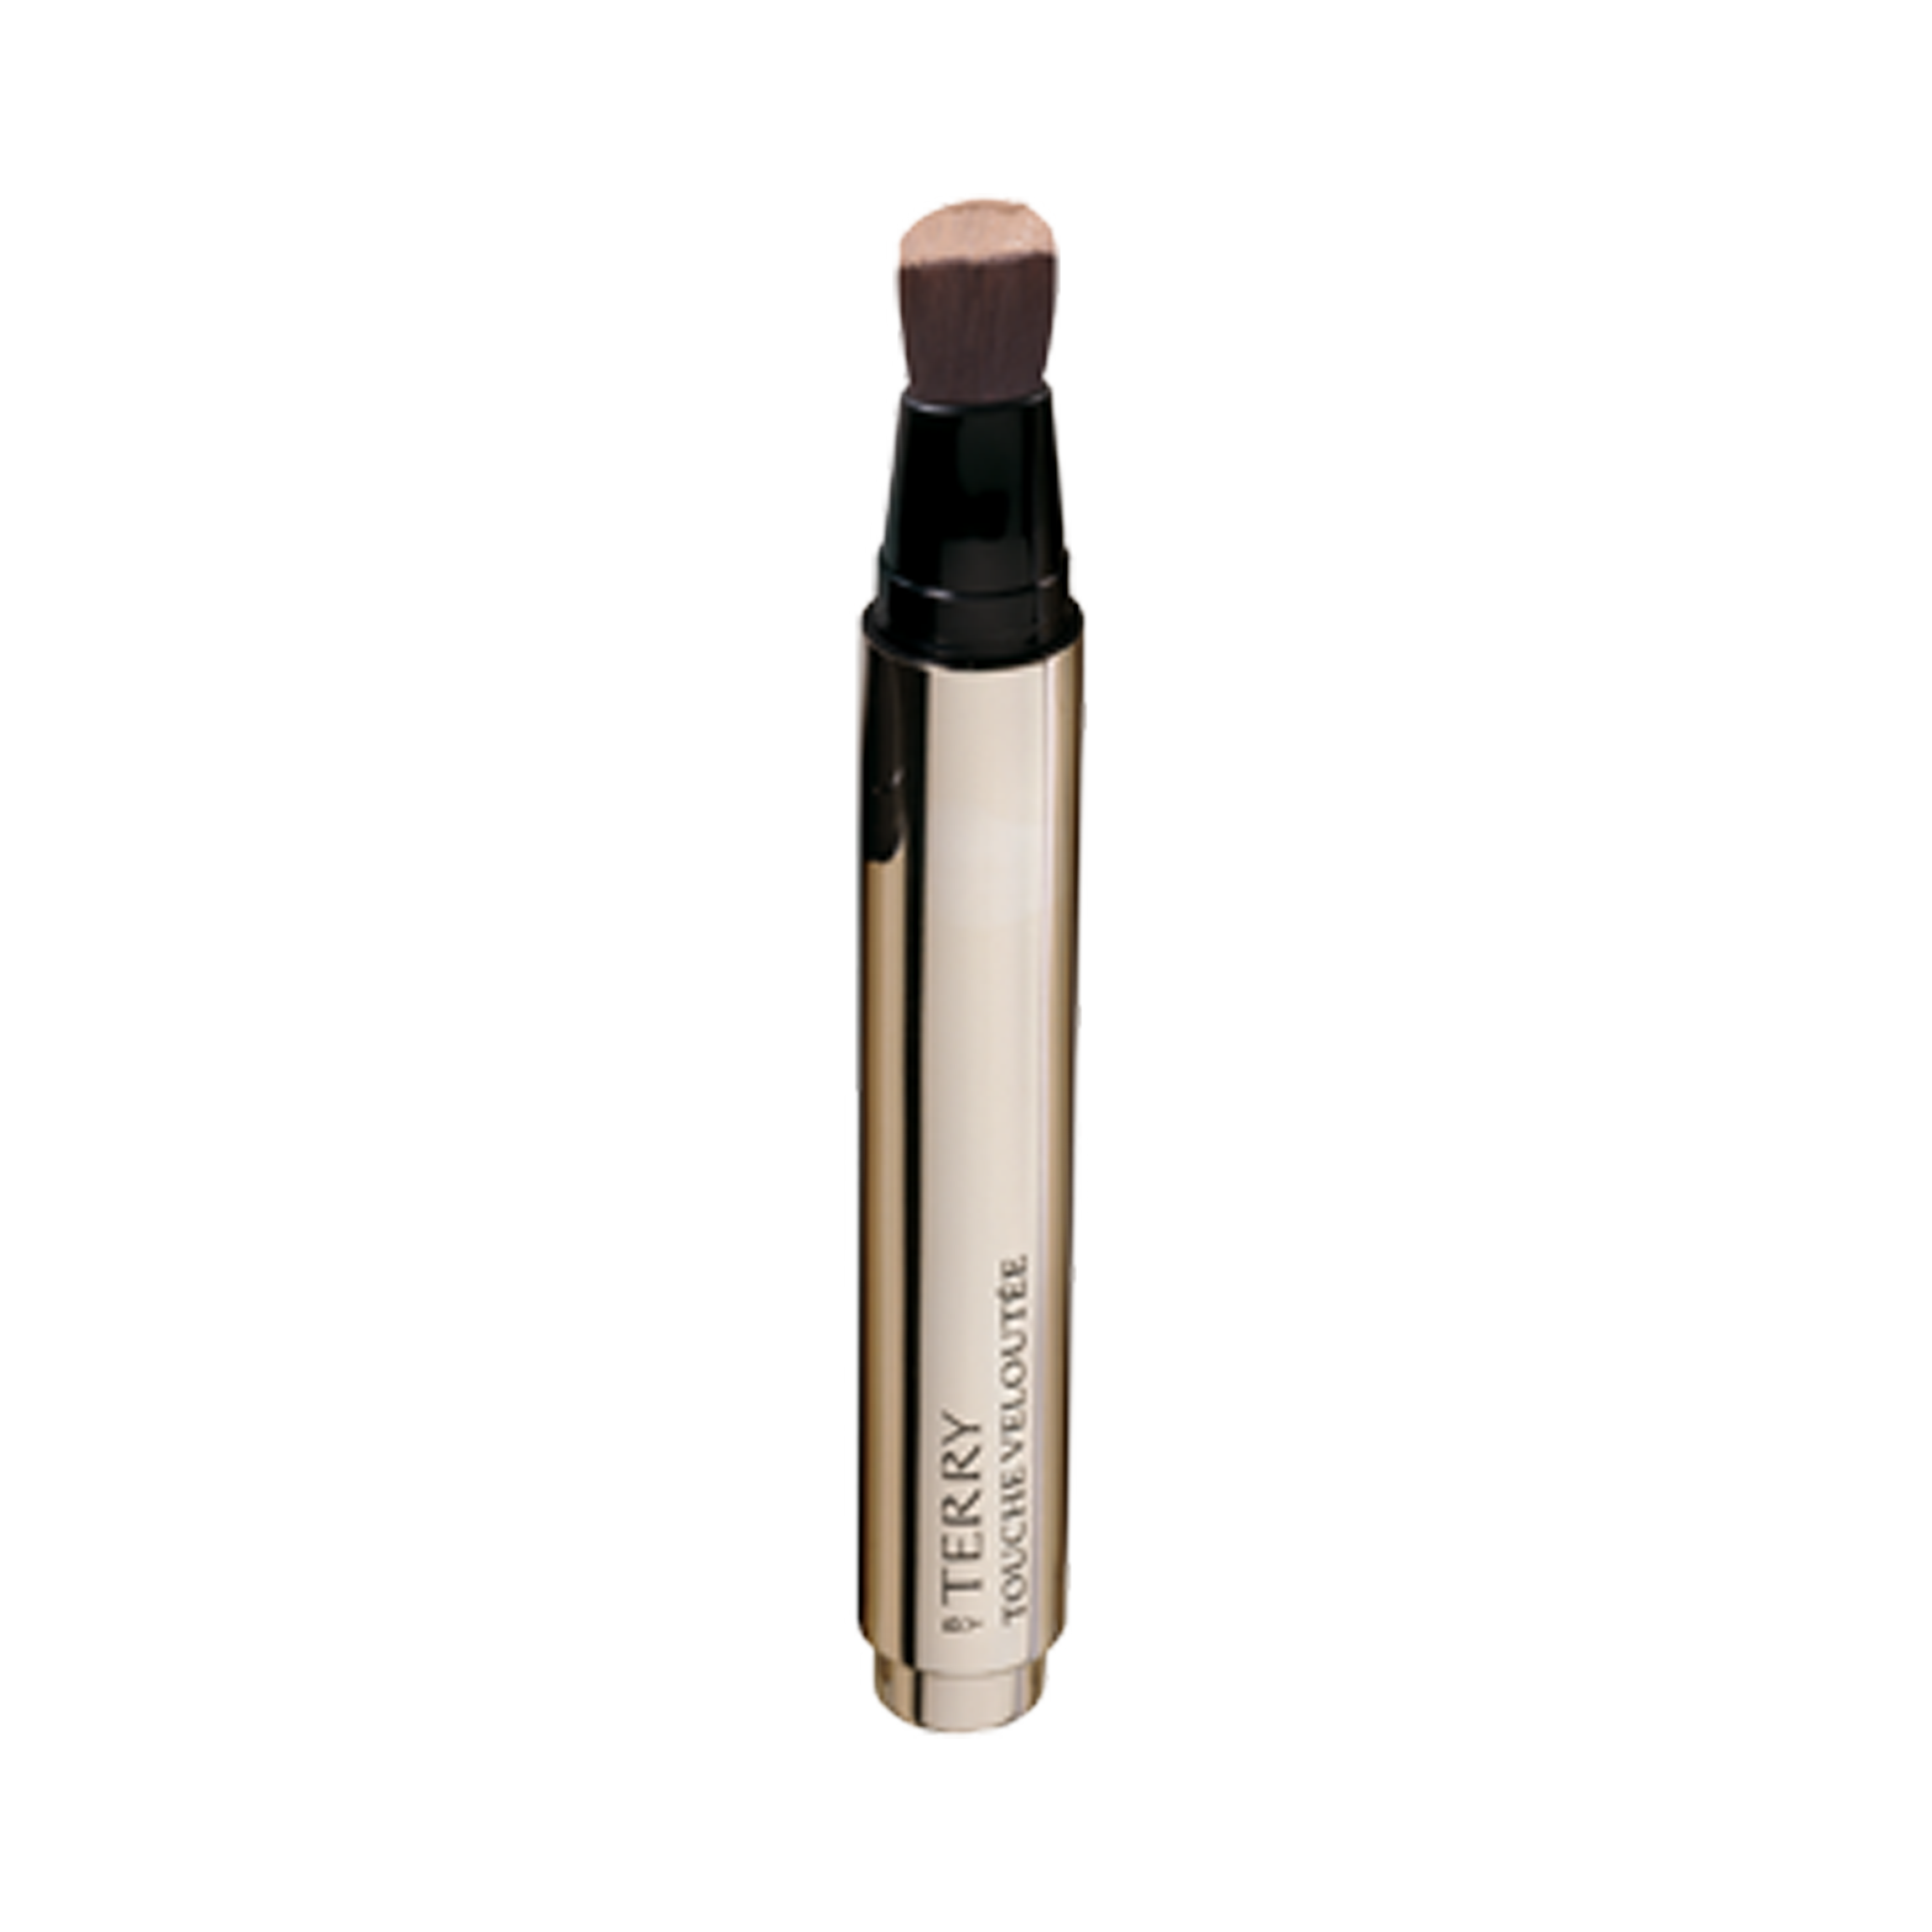 Touche Veloutee Highlighting Concealer Brush